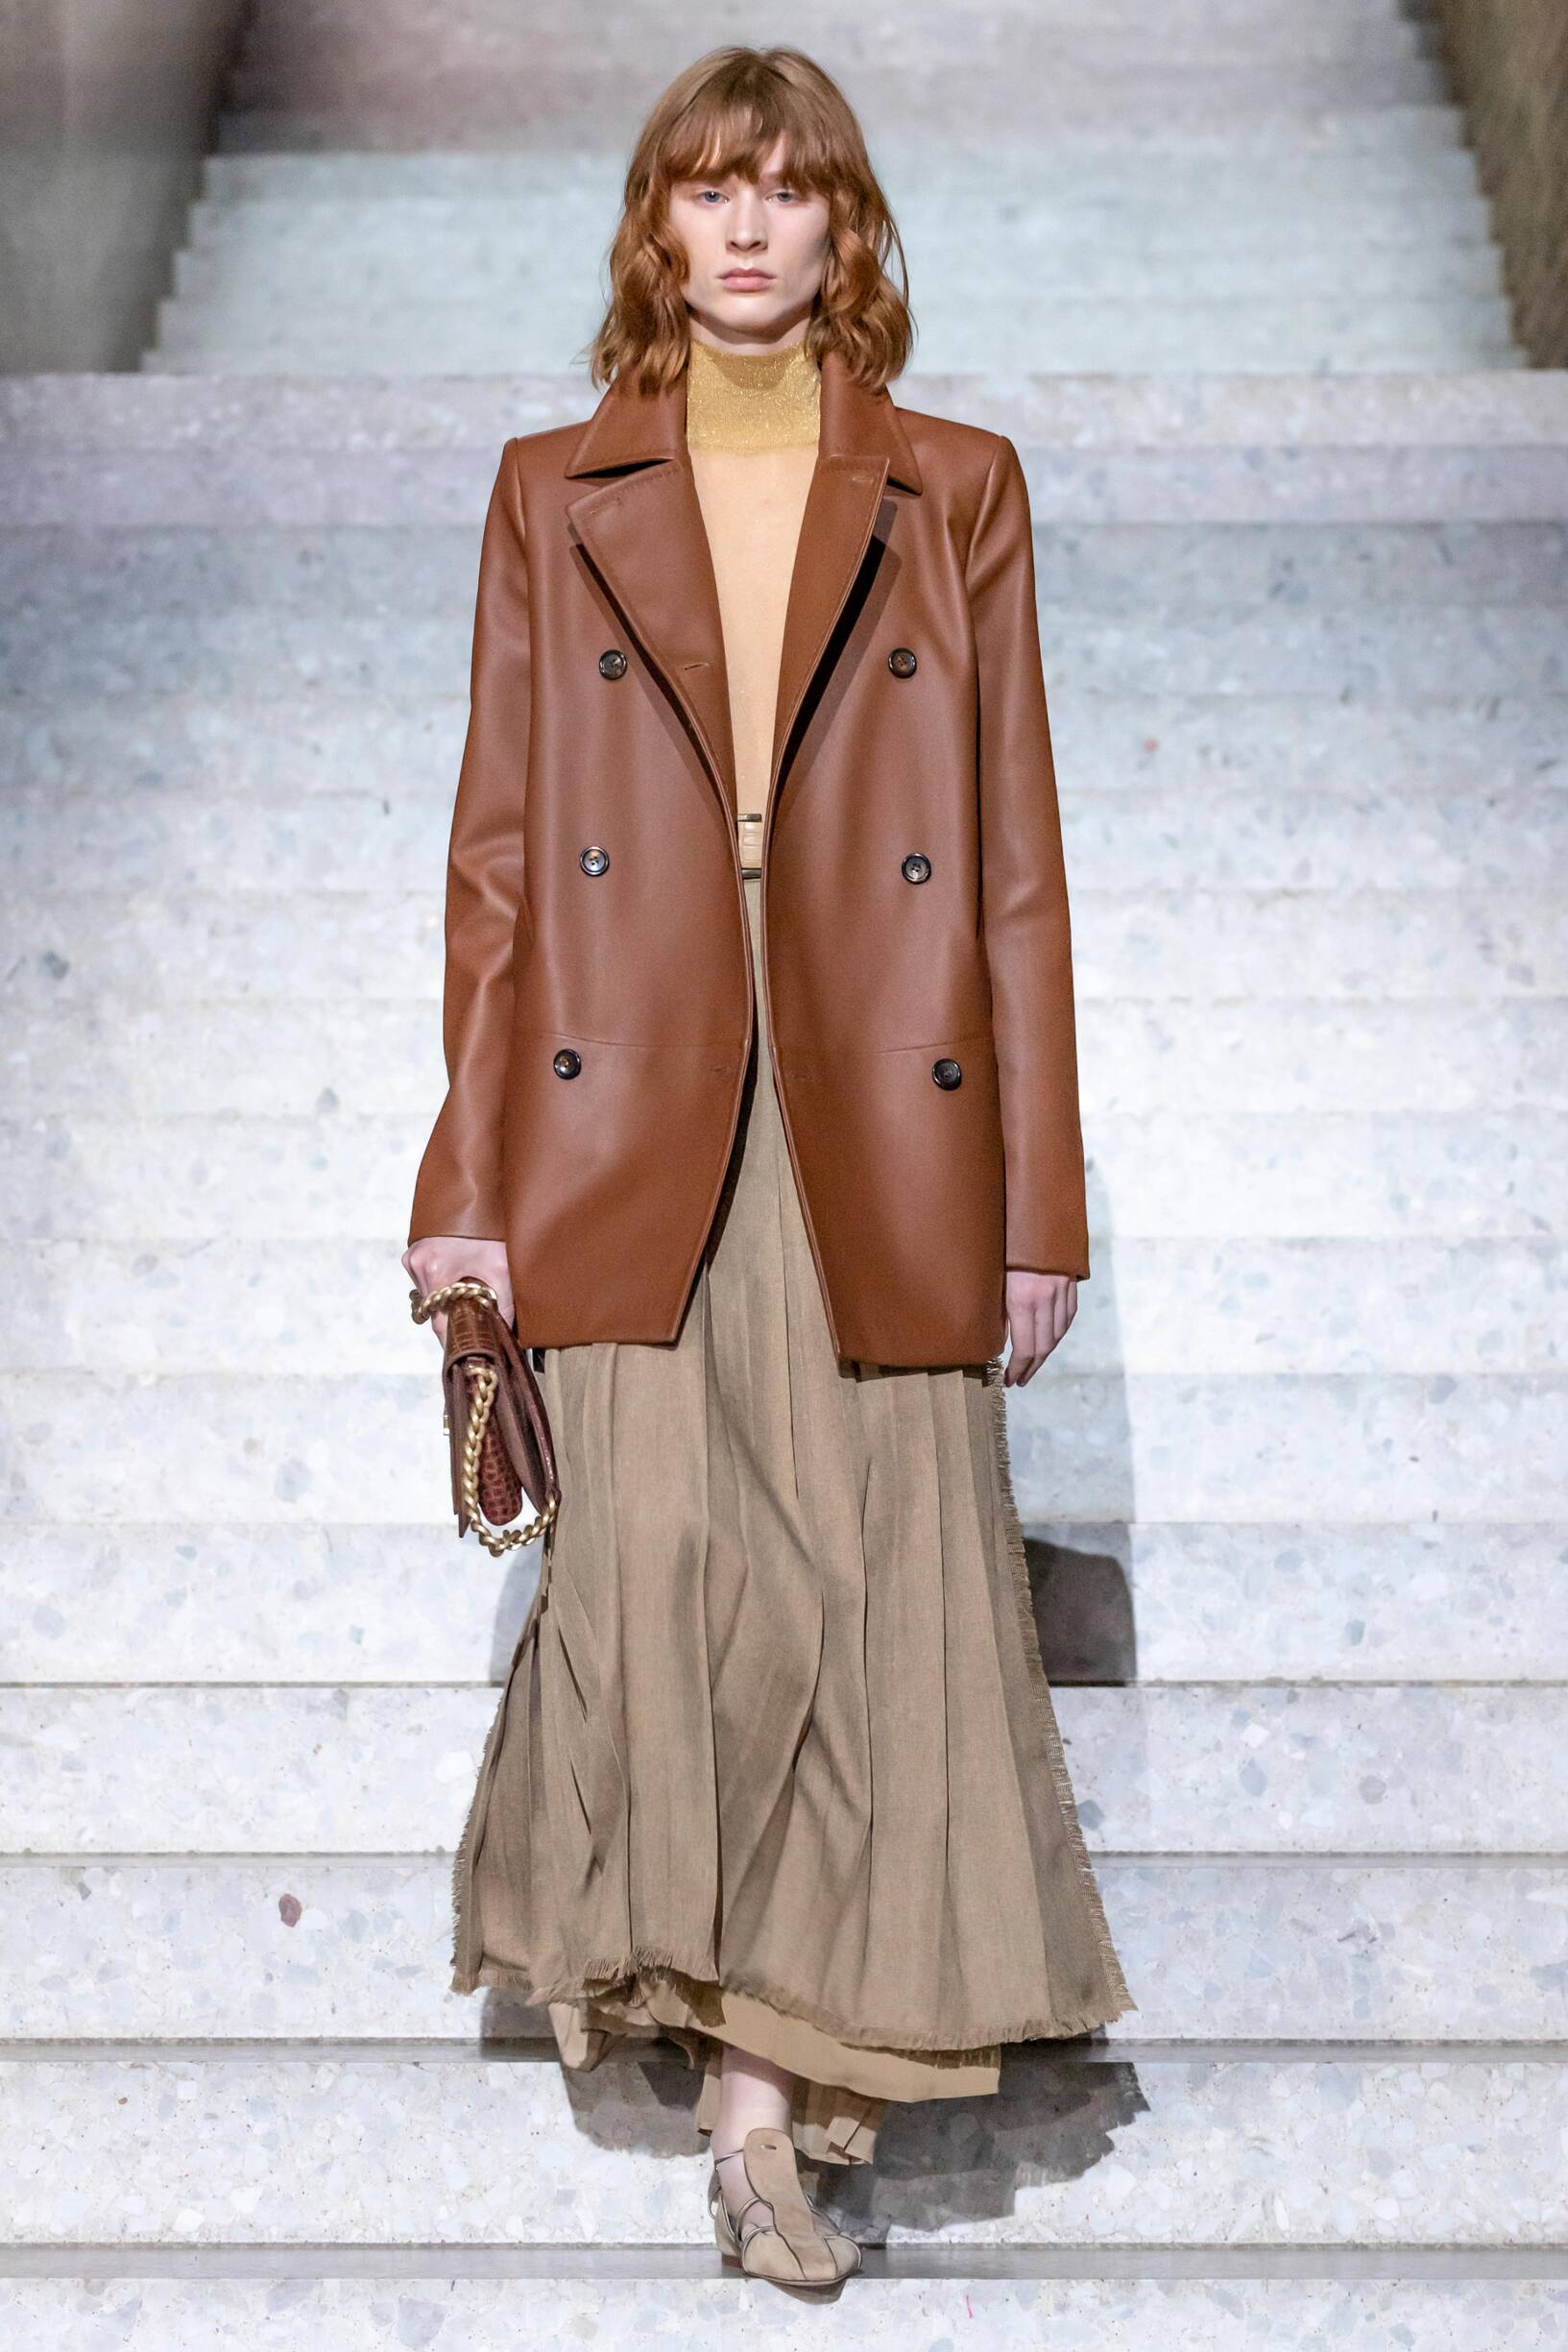 Max Mara Resort 2020 Collection Look 12 Berlin